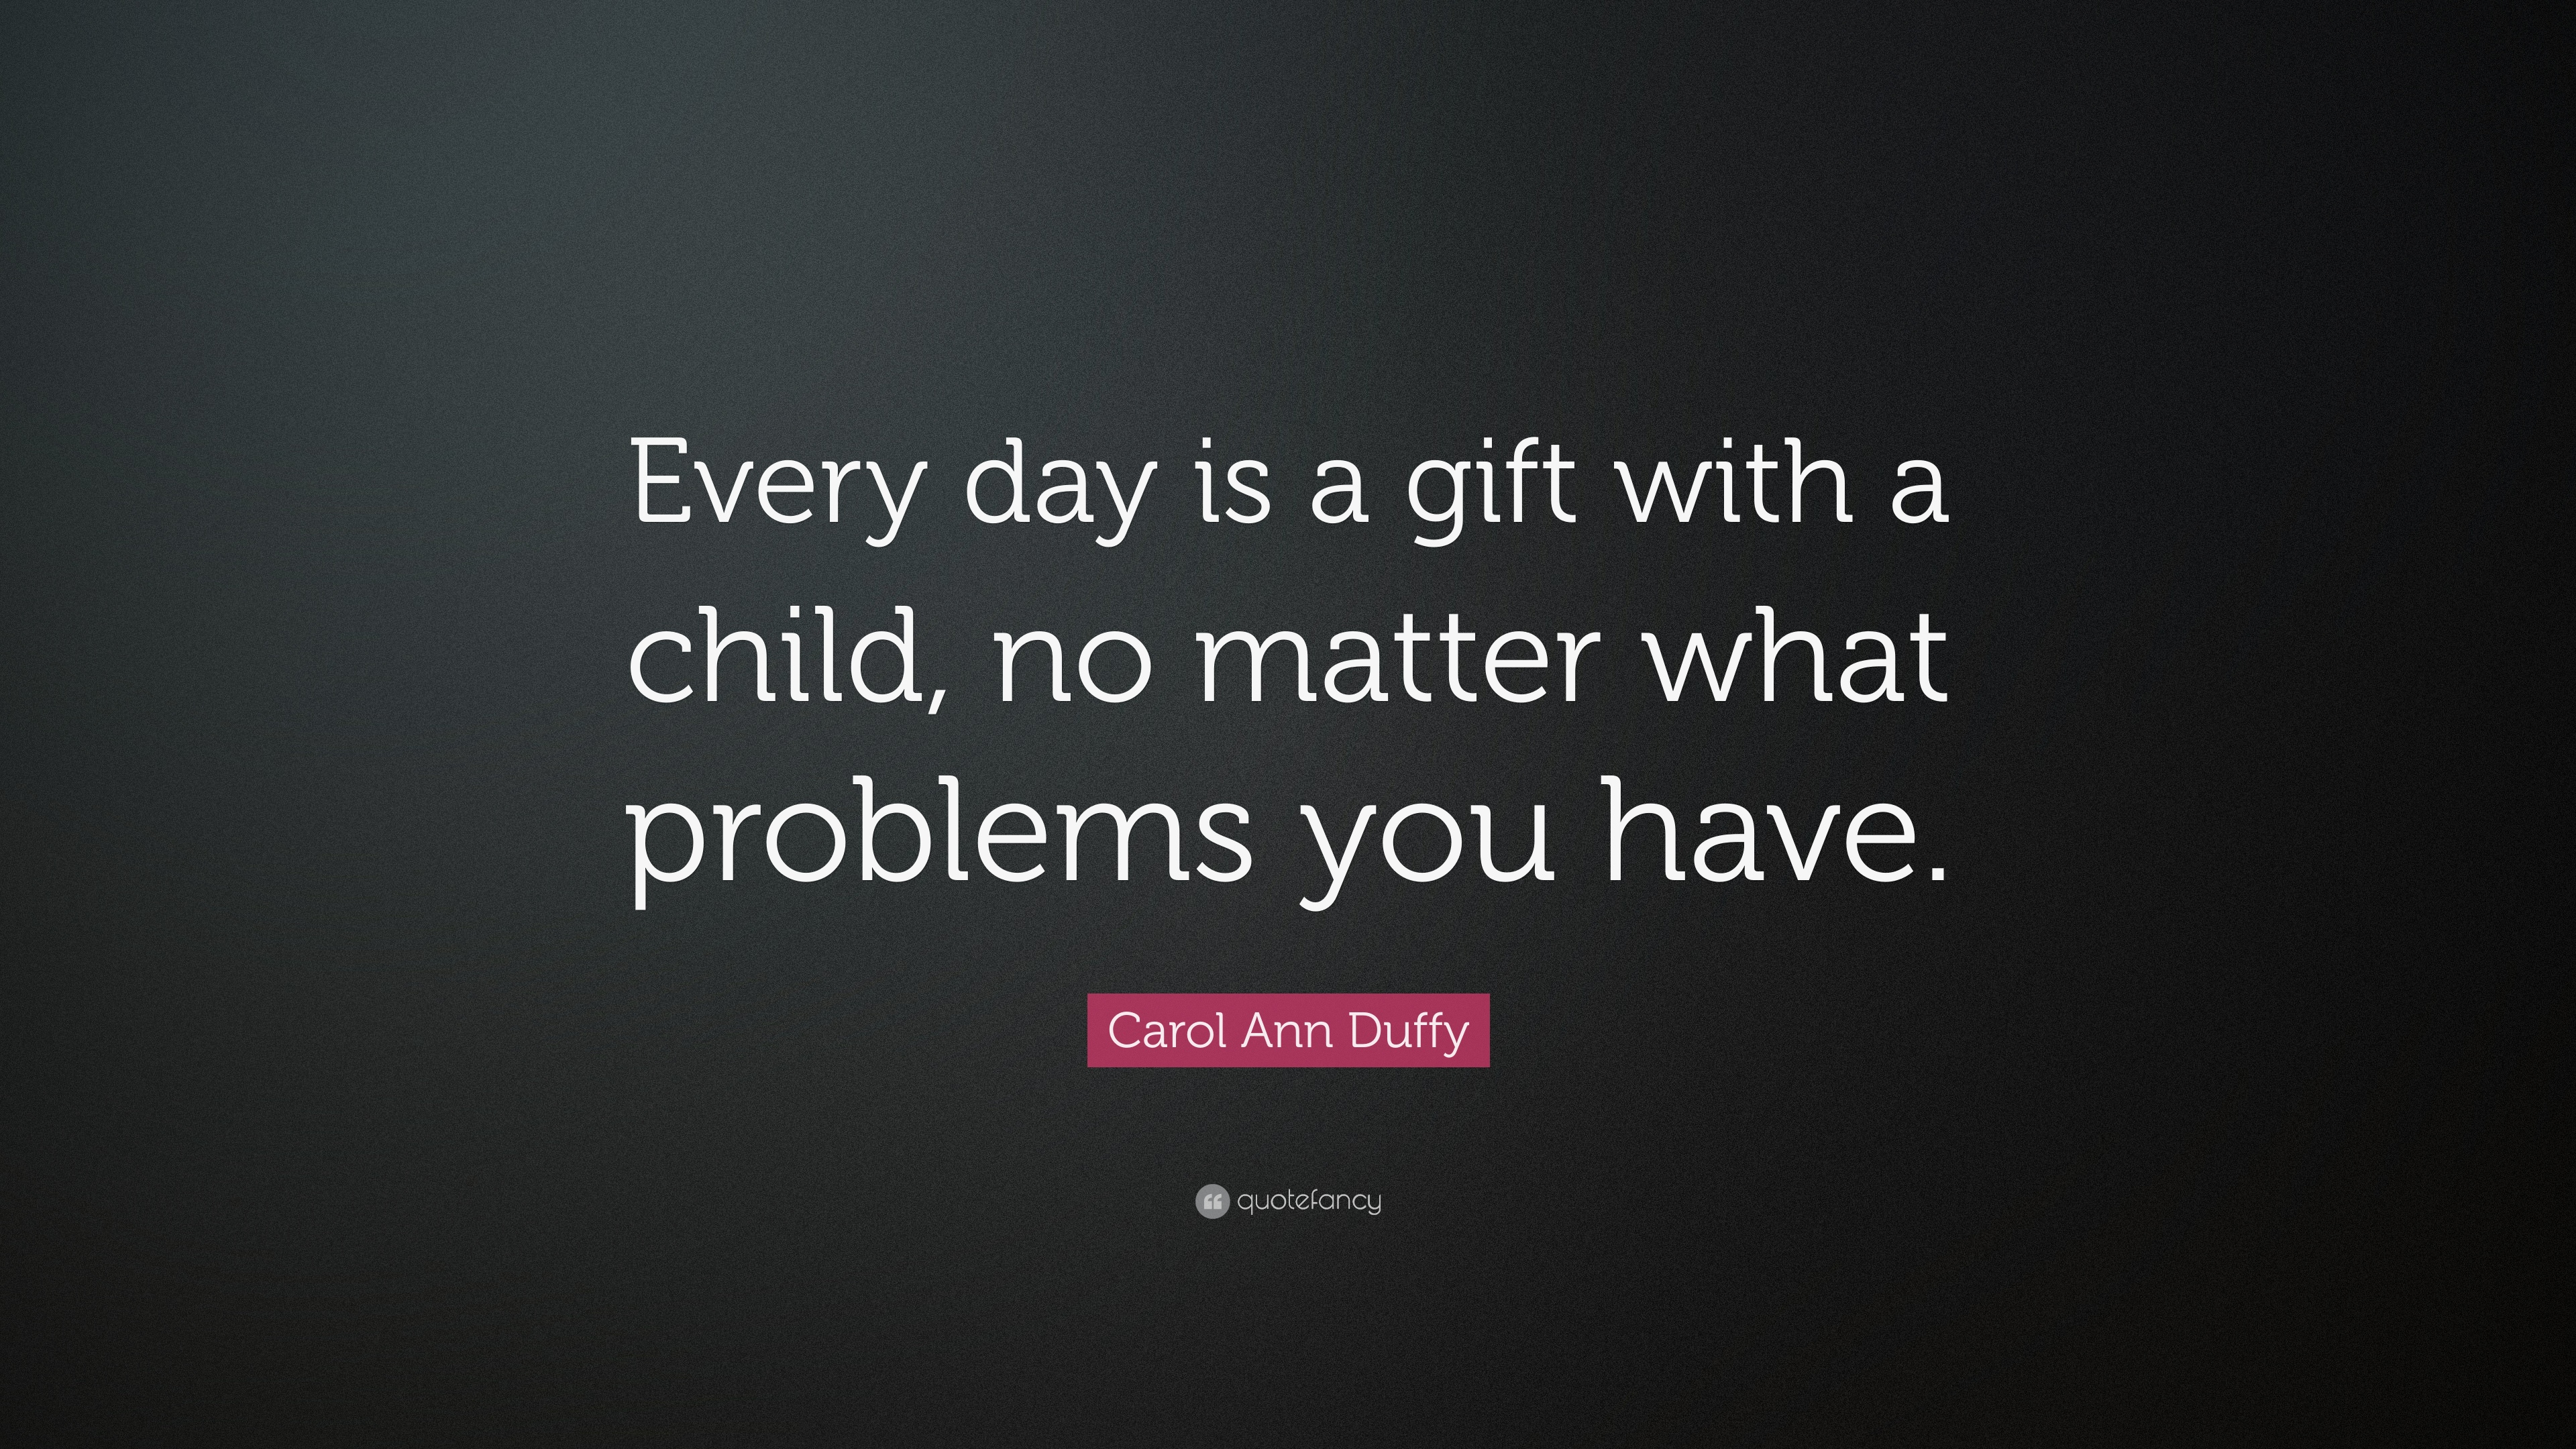 Carol Ann Duffy Quote Every Day Is A Gift With A Child No Matter